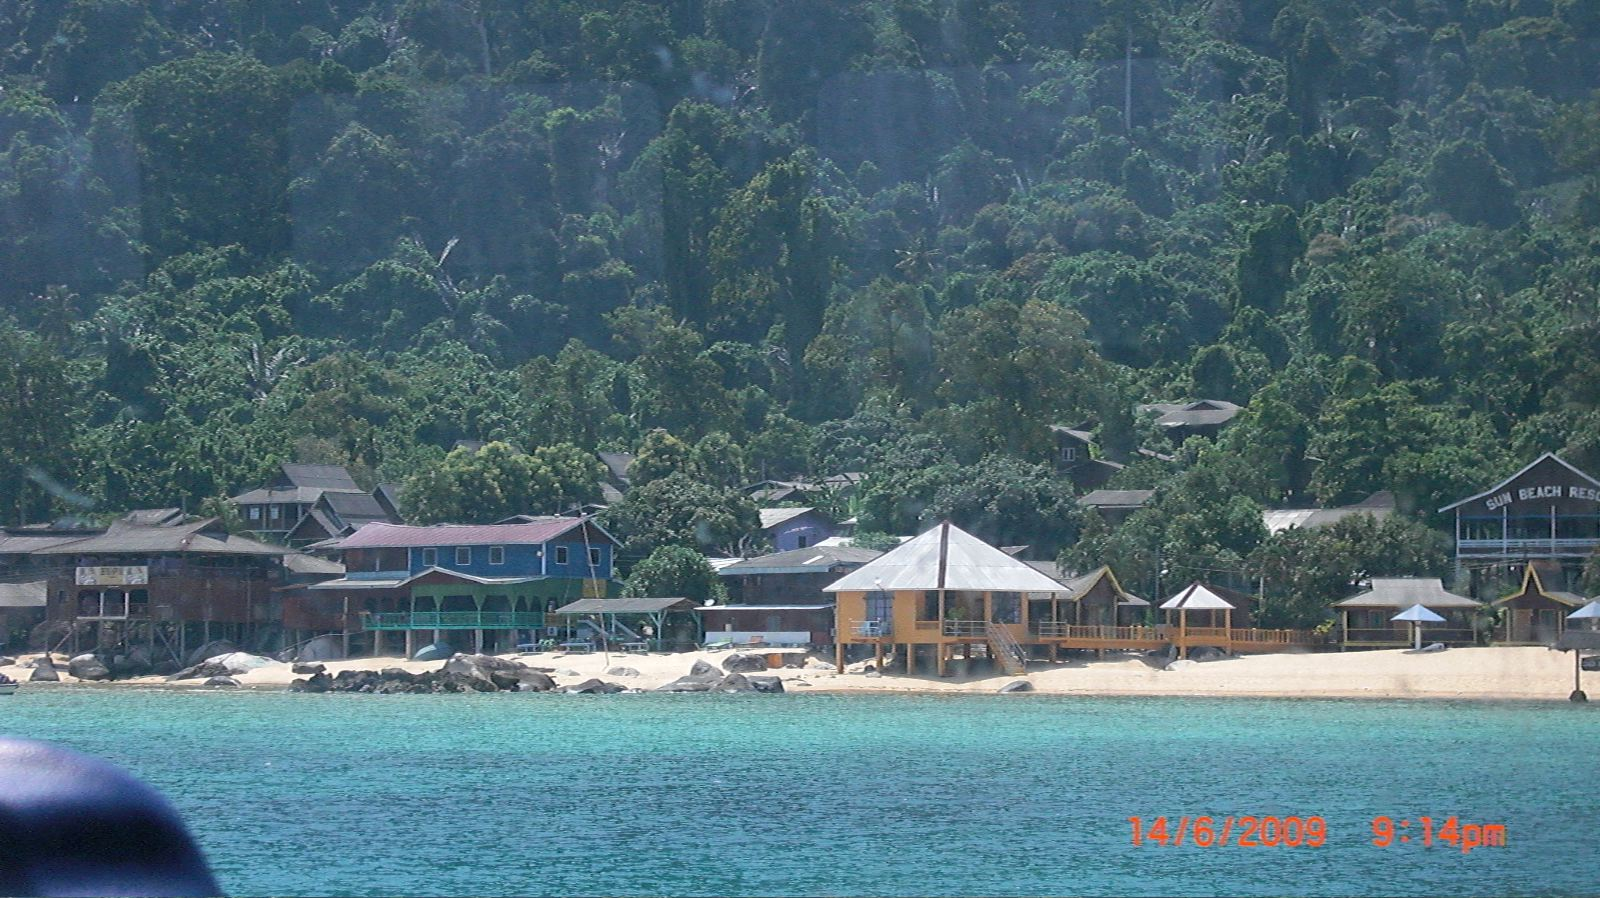 Tioman Island Malaysia  City pictures : Arriving at Tioman island, Malaysia.